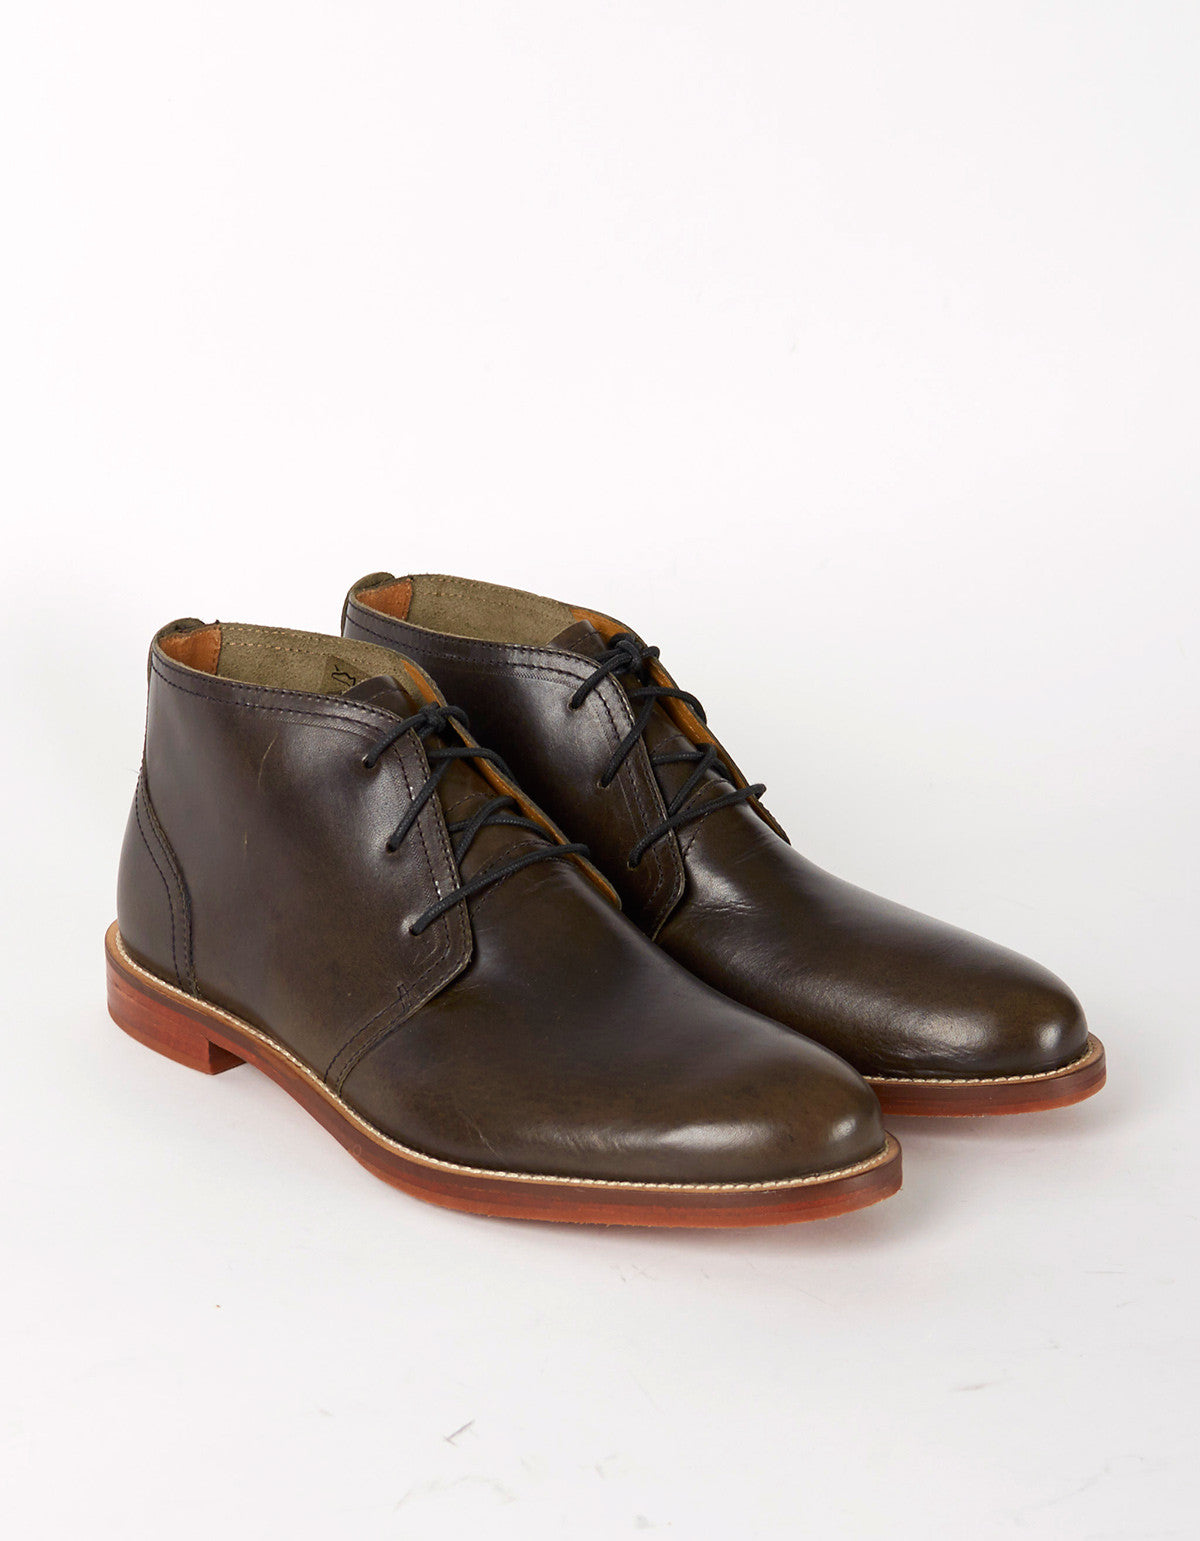 J Shoes Monarch Chukka Boot Black - Still Life - 4